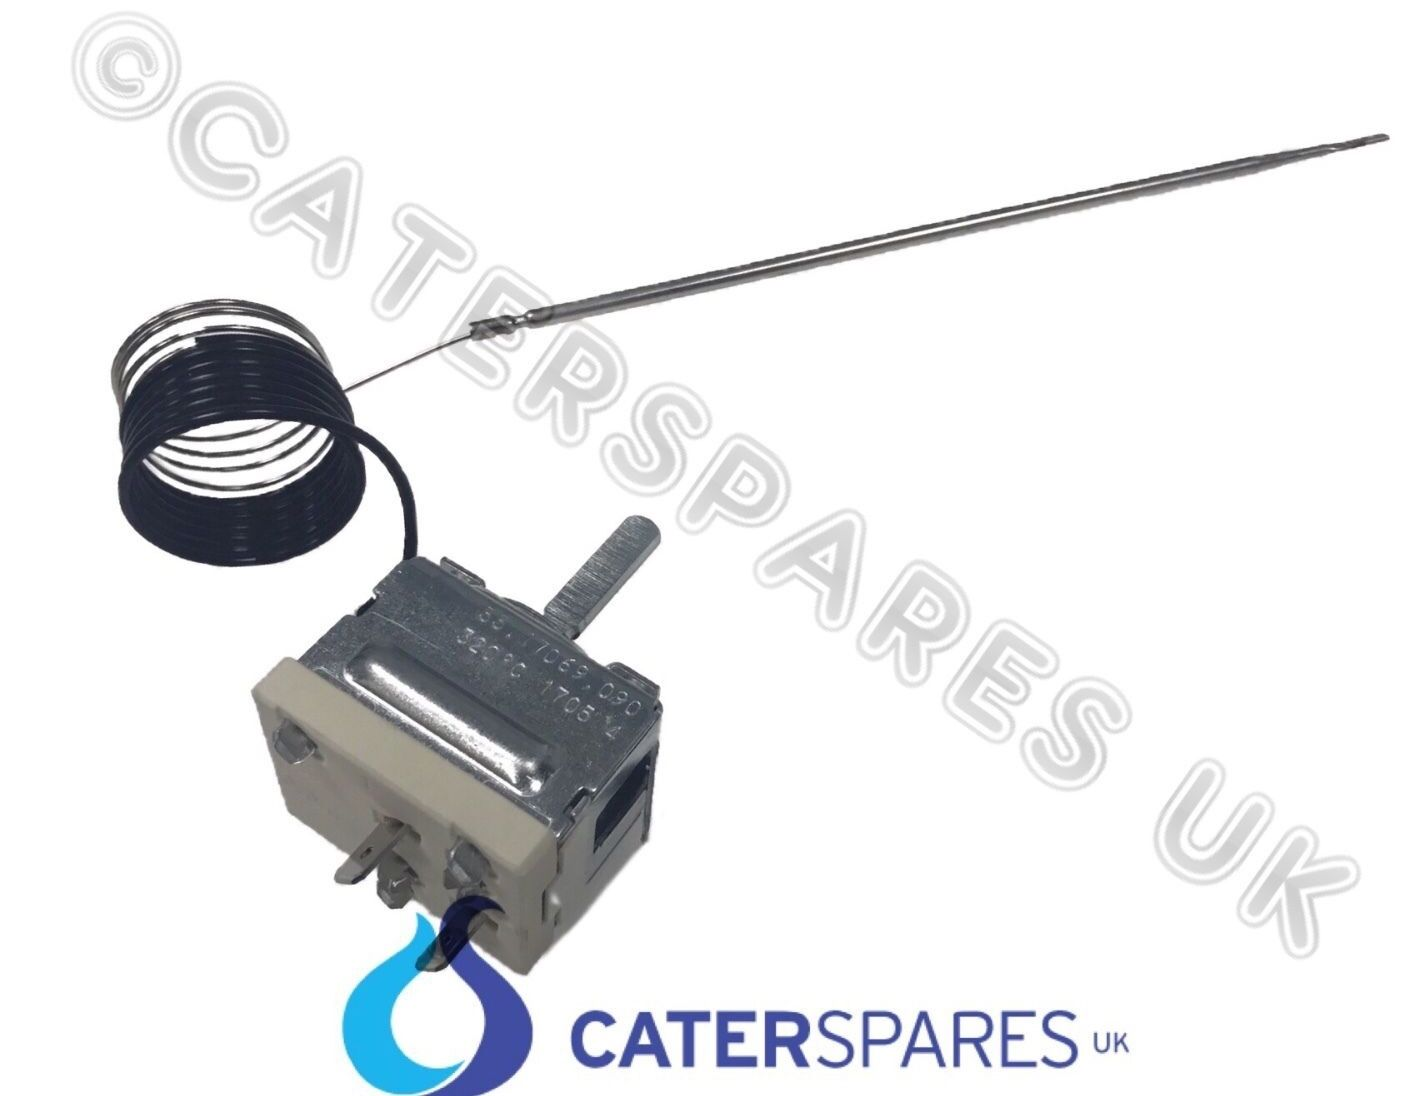 for convection oven Rosinox Ego 5519064800 Thermostat 250v 50-310 ° C